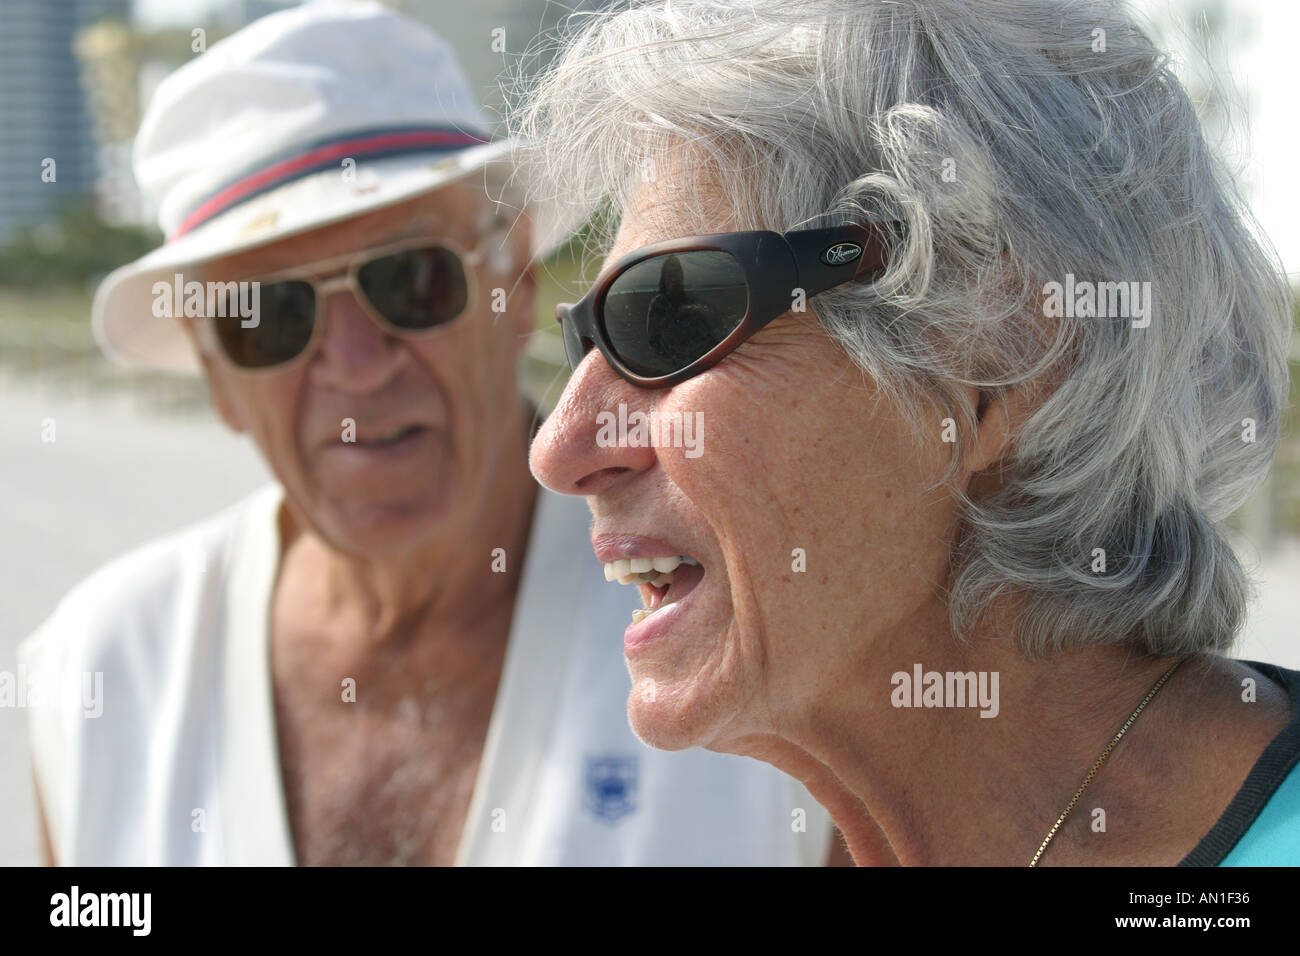 1beb8522dd0 Miami Beach Florida Atlantic shore senior couple sunglasses - Stock Image